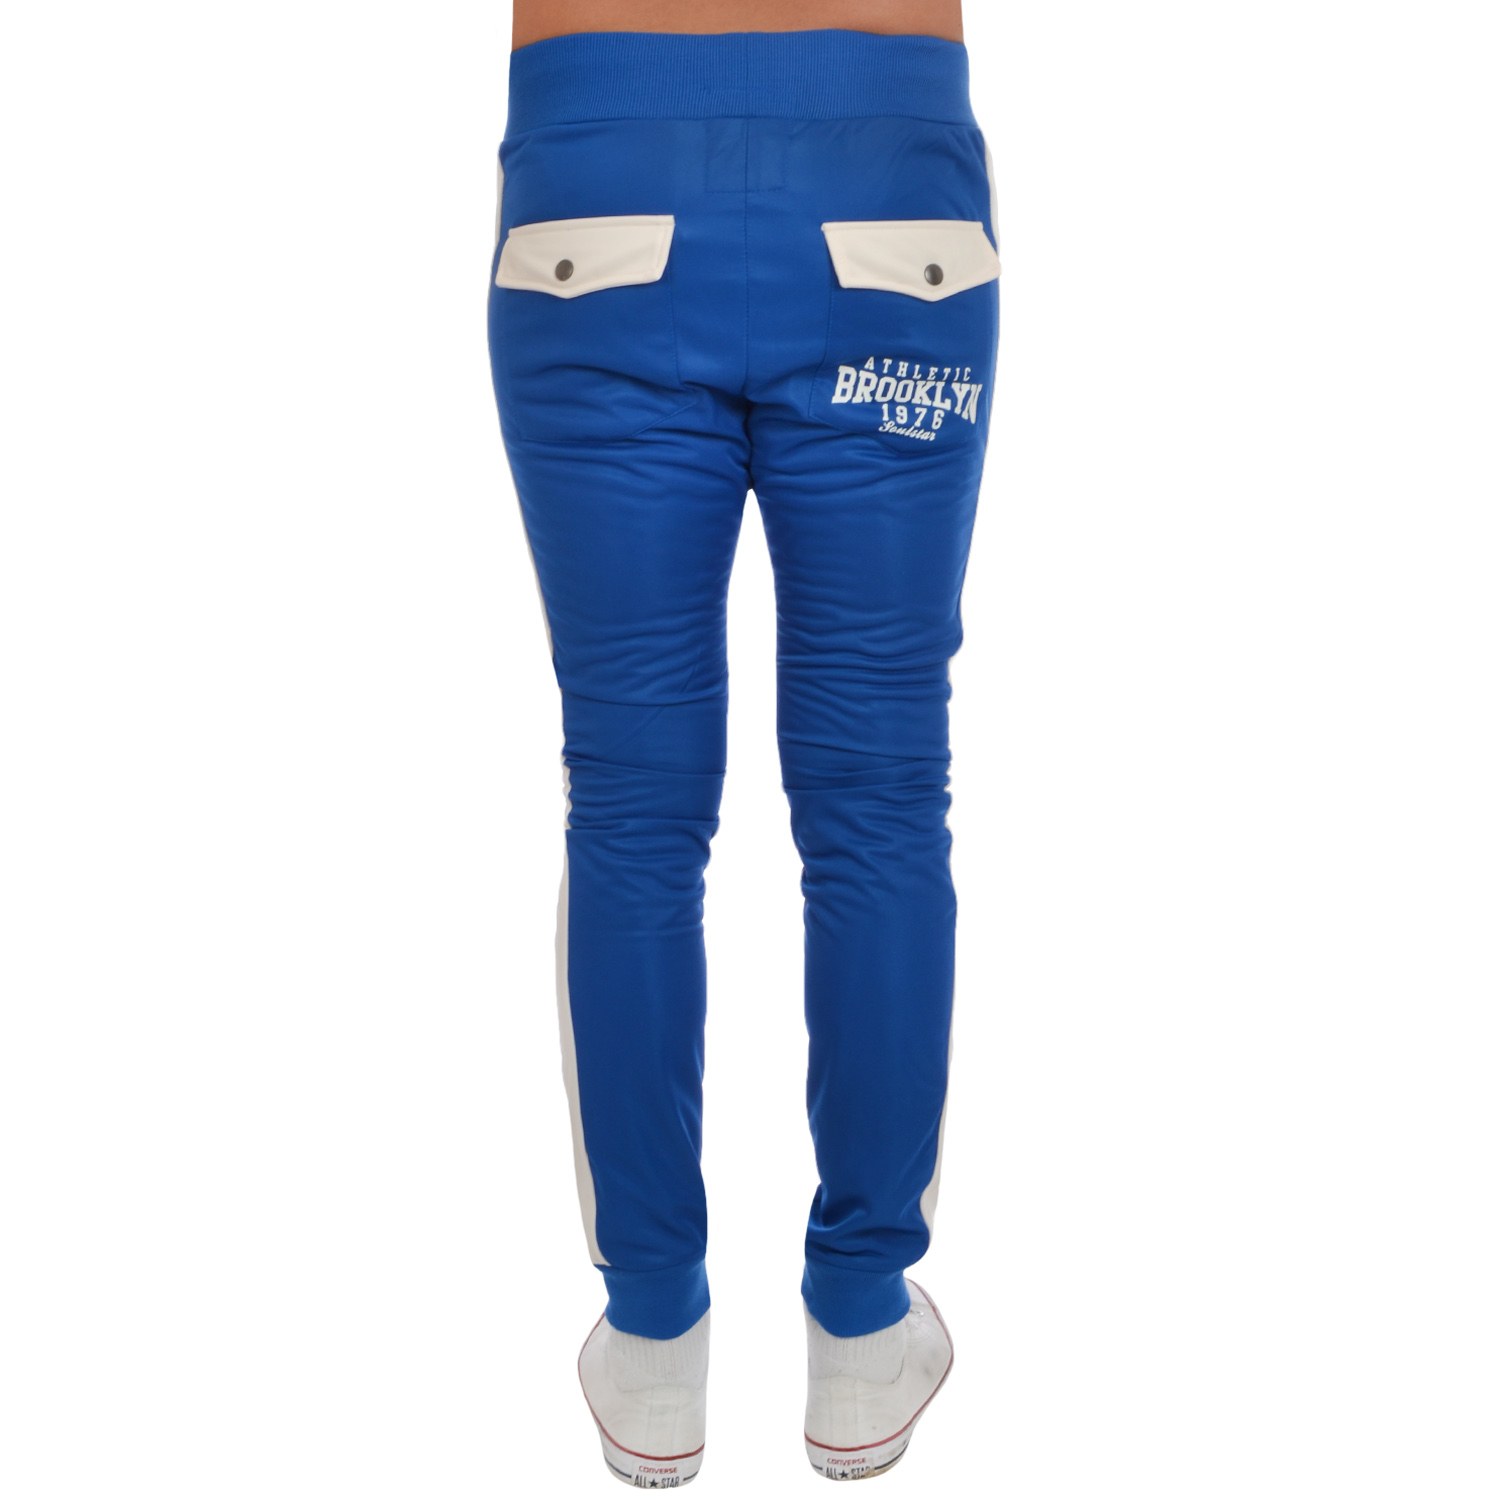 SST Slim-Fit Track Pants;Sporty track pants with three-stripes and pintuck details. Elasticized waist with belt loops. Zip fly with button closure. Side welt pockets. Slim-fit. Polyester/cotton/elastane. Machine wash. Imported. Model shown is 5'10